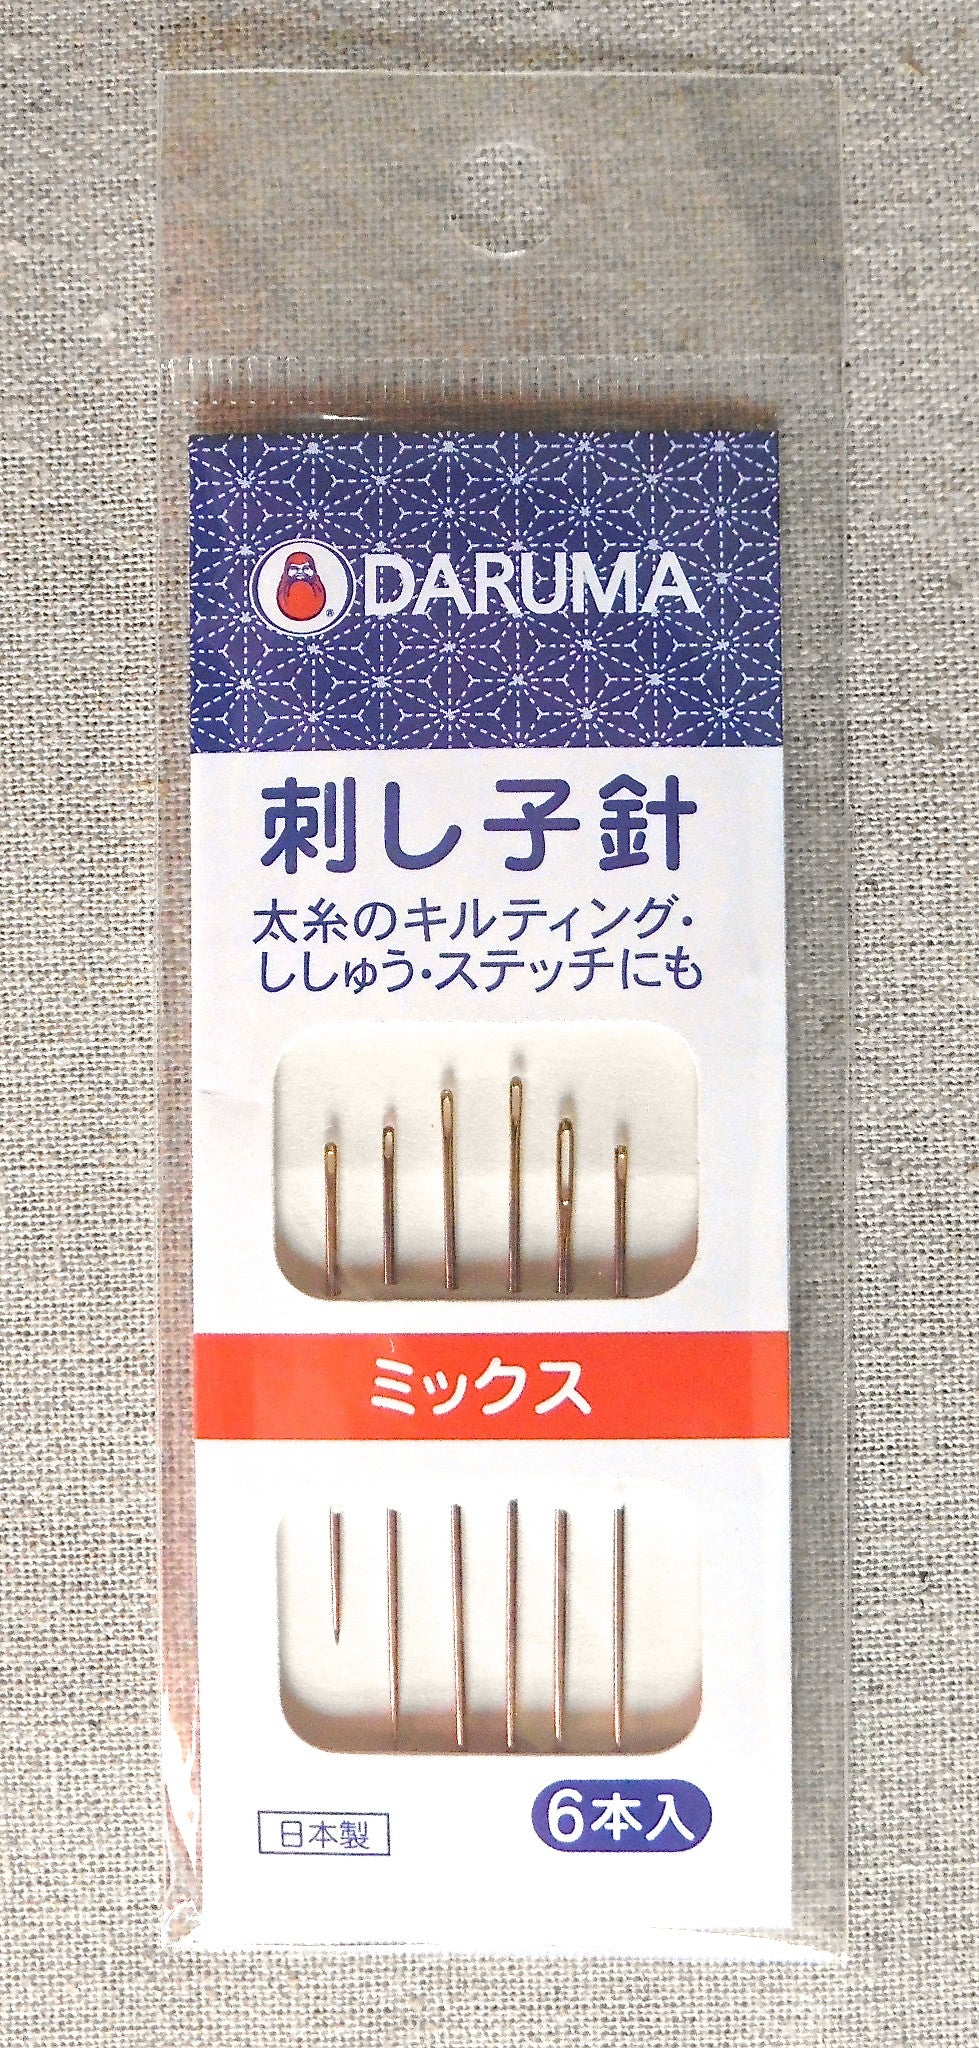 Sashiko Needles - 6 Assorted Needles by Daruma